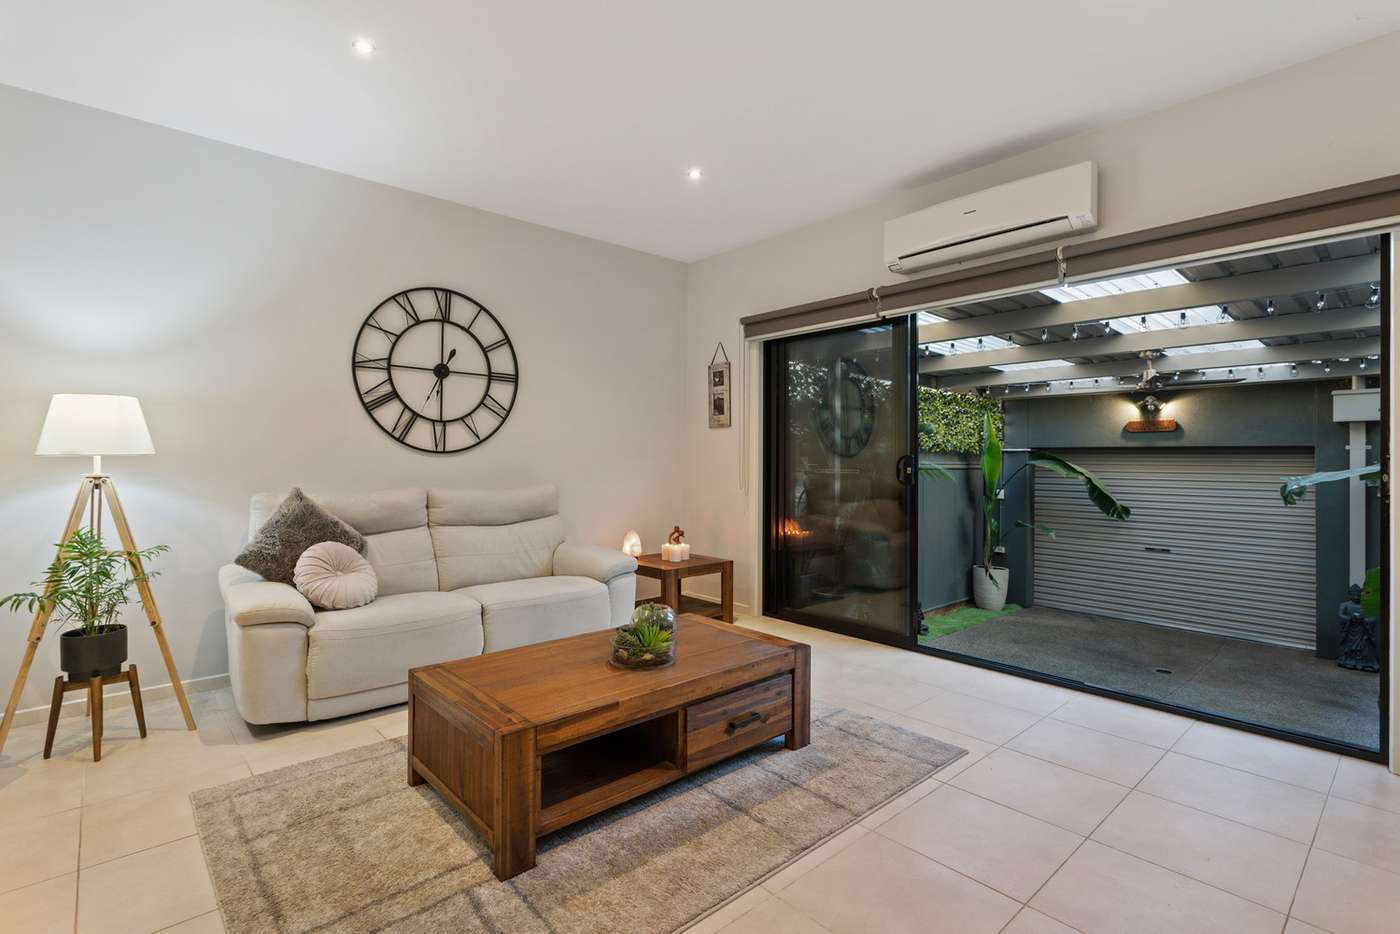 Sixth view of Homely house listing, 14 Boathouse Drive, Caroline Springs VIC 3023